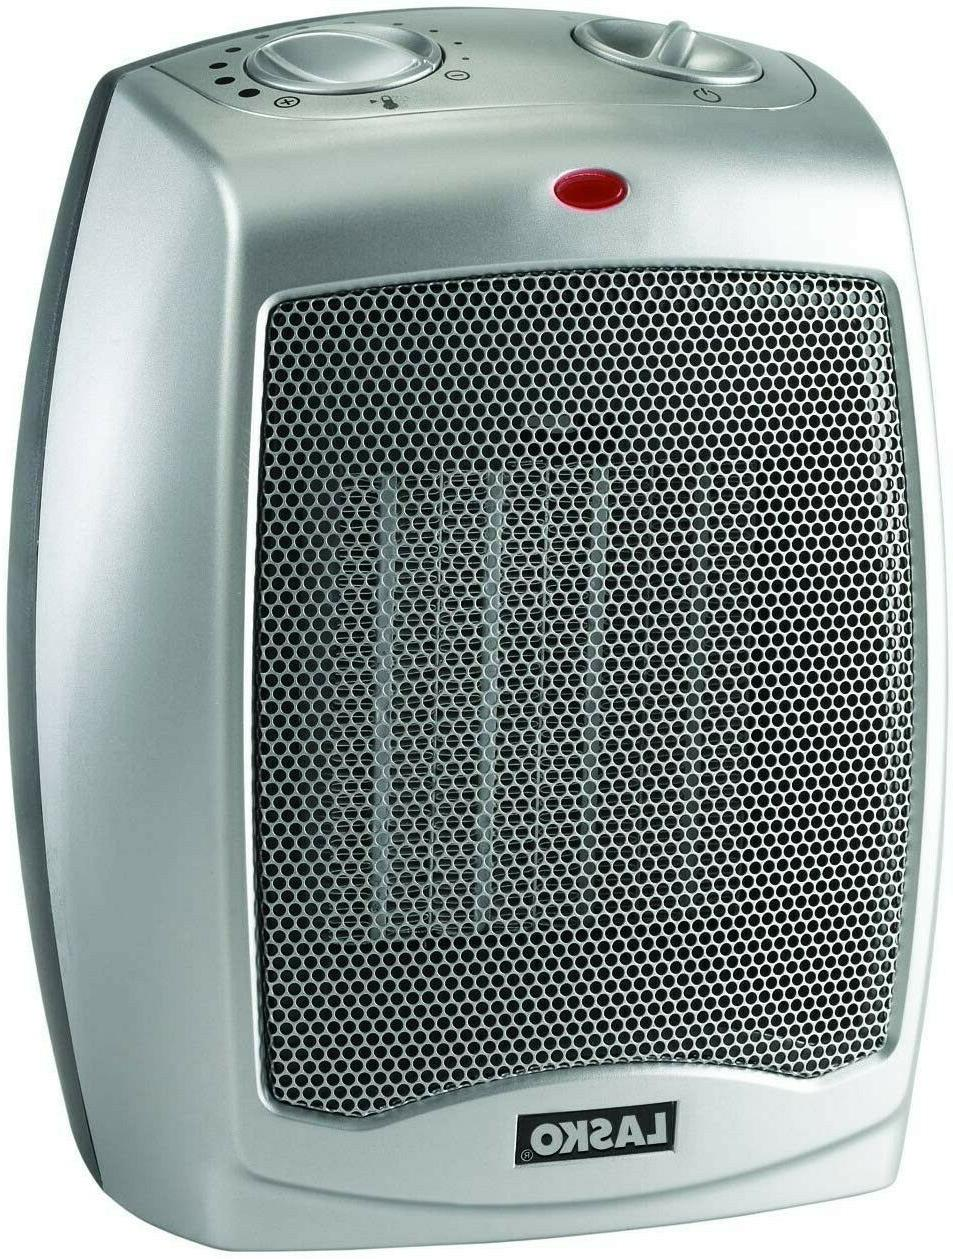 754200 ceramic portable space heater with adjustable